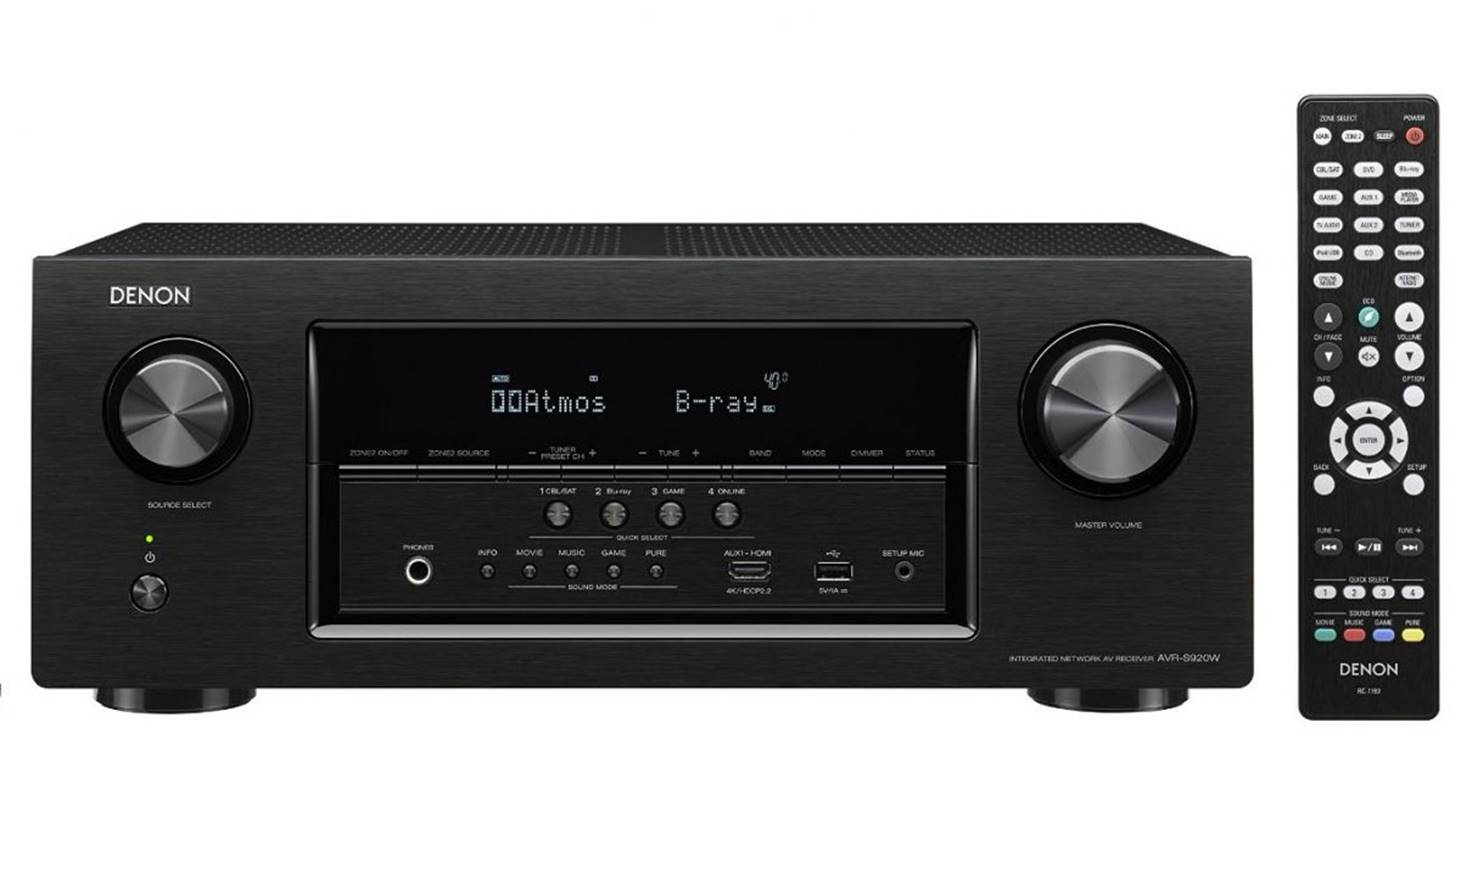 Denon AVR-S920W AV Receiver for Home Theater